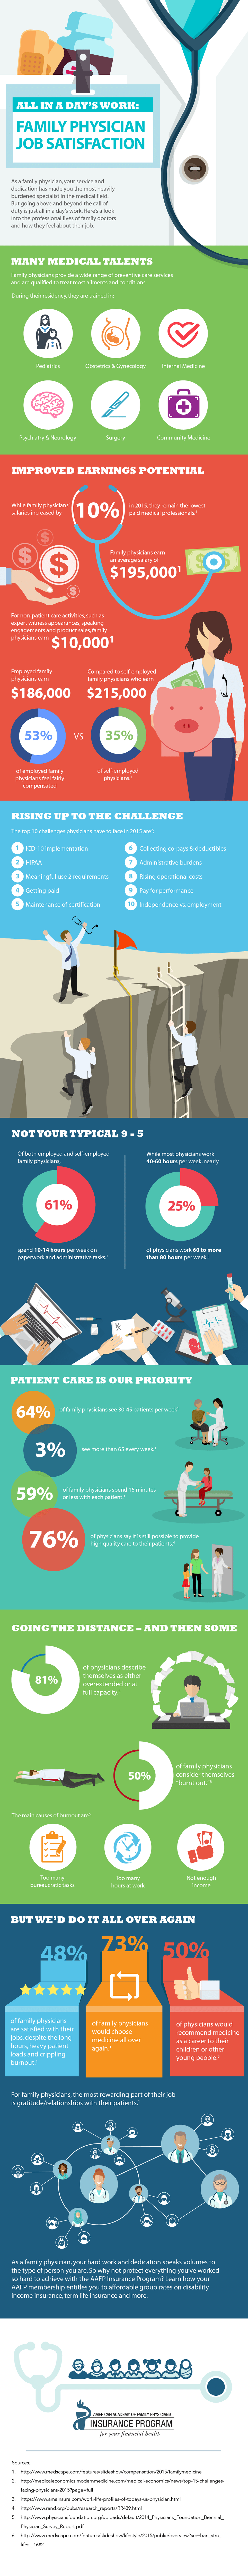 AAFPINS_All Work Infographic_2015